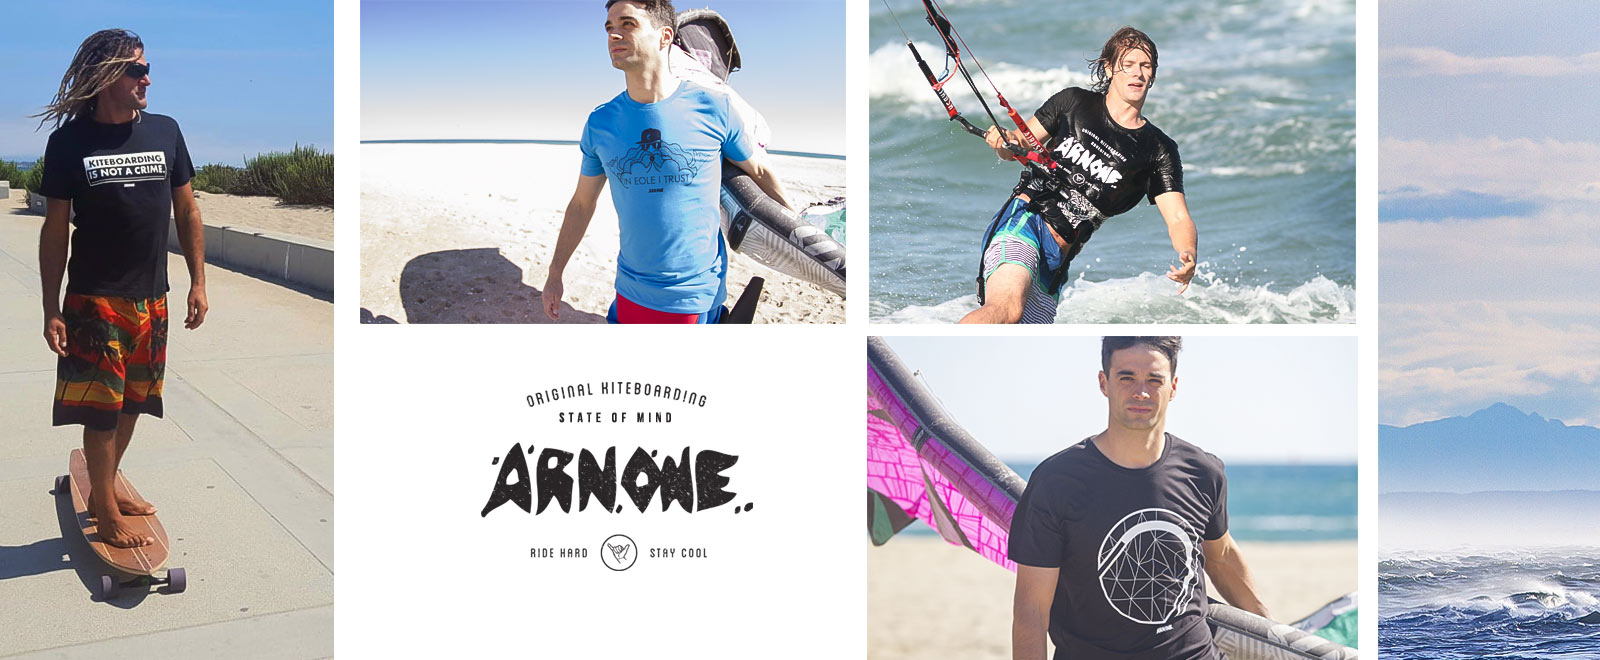 Arnone kiteboarding wear